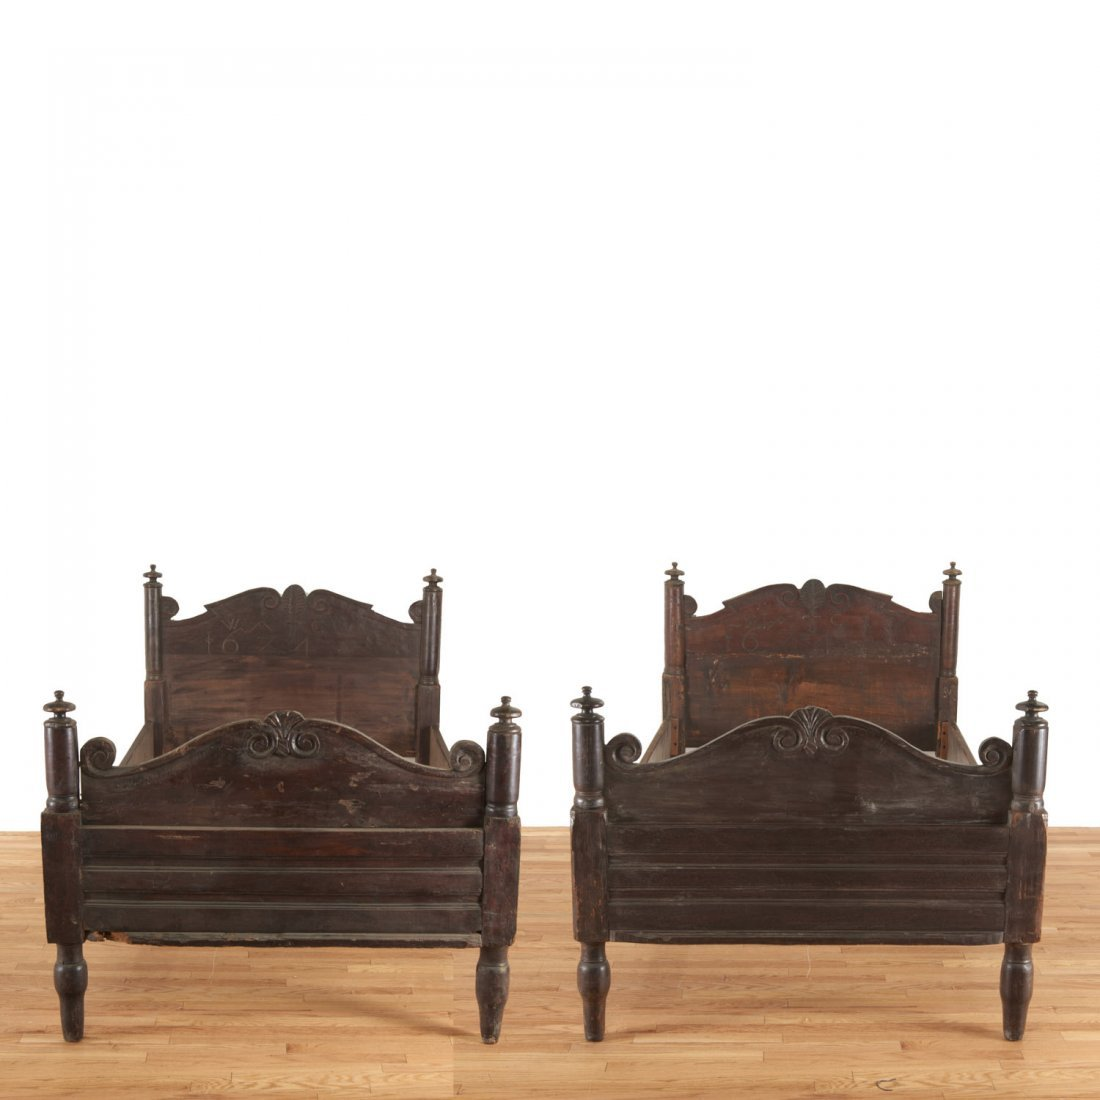 Pair Italian Baroque carved oak beds